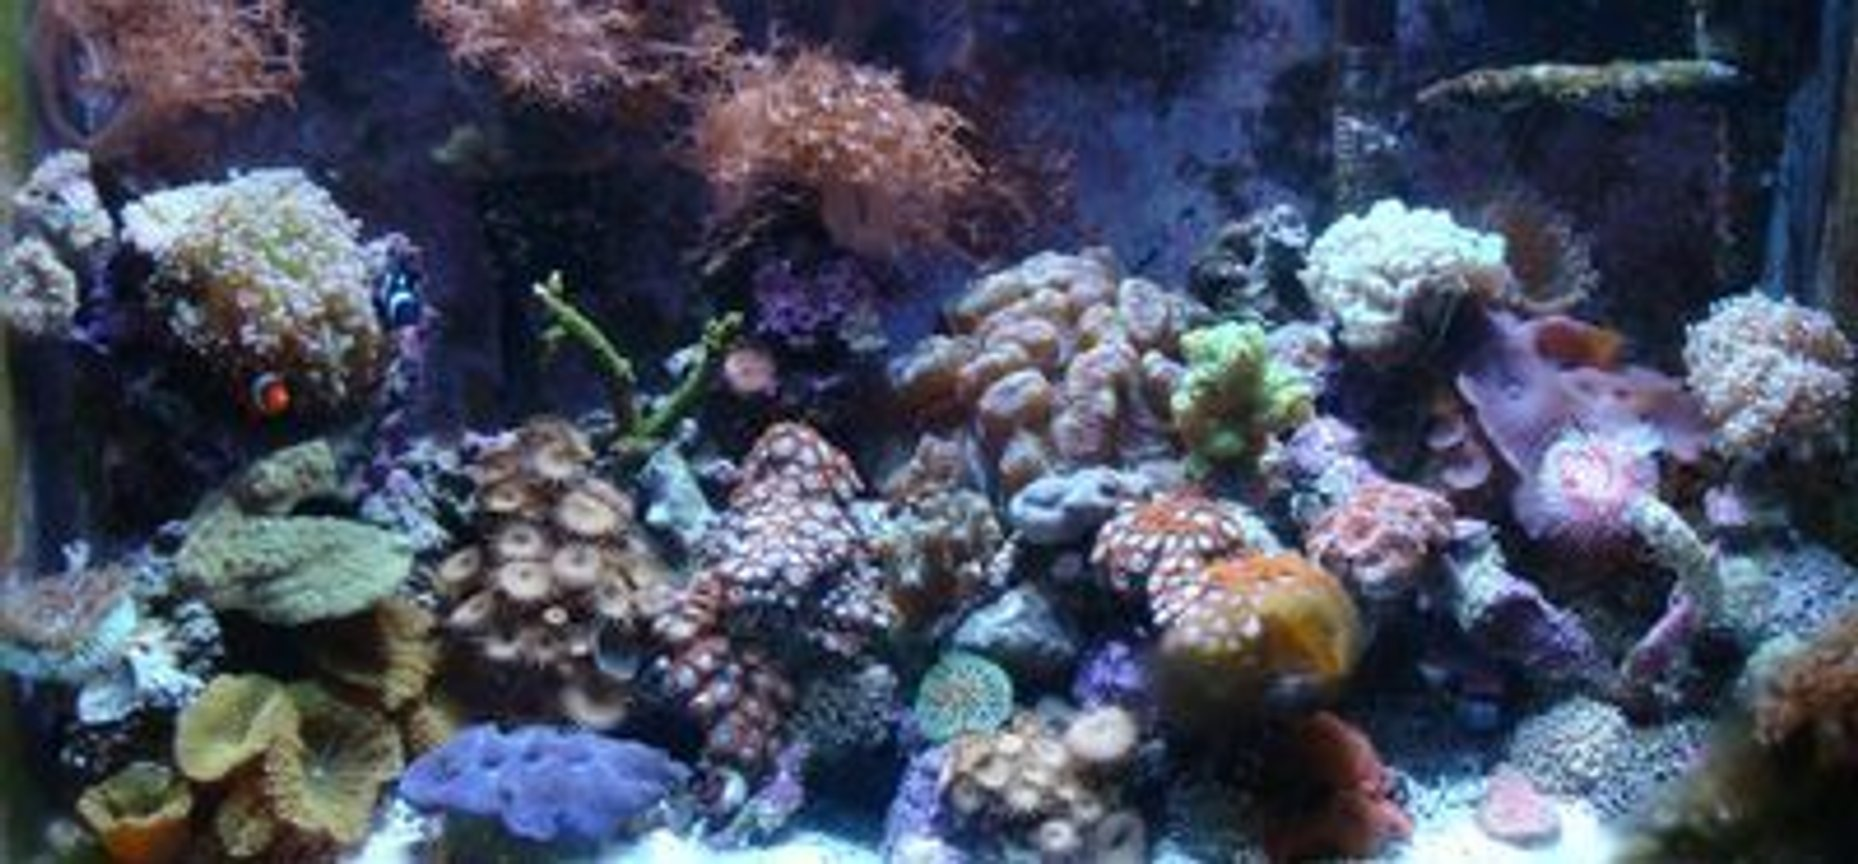 30 gallons reef tank (mostly live coral and fish) - full view of reef tank